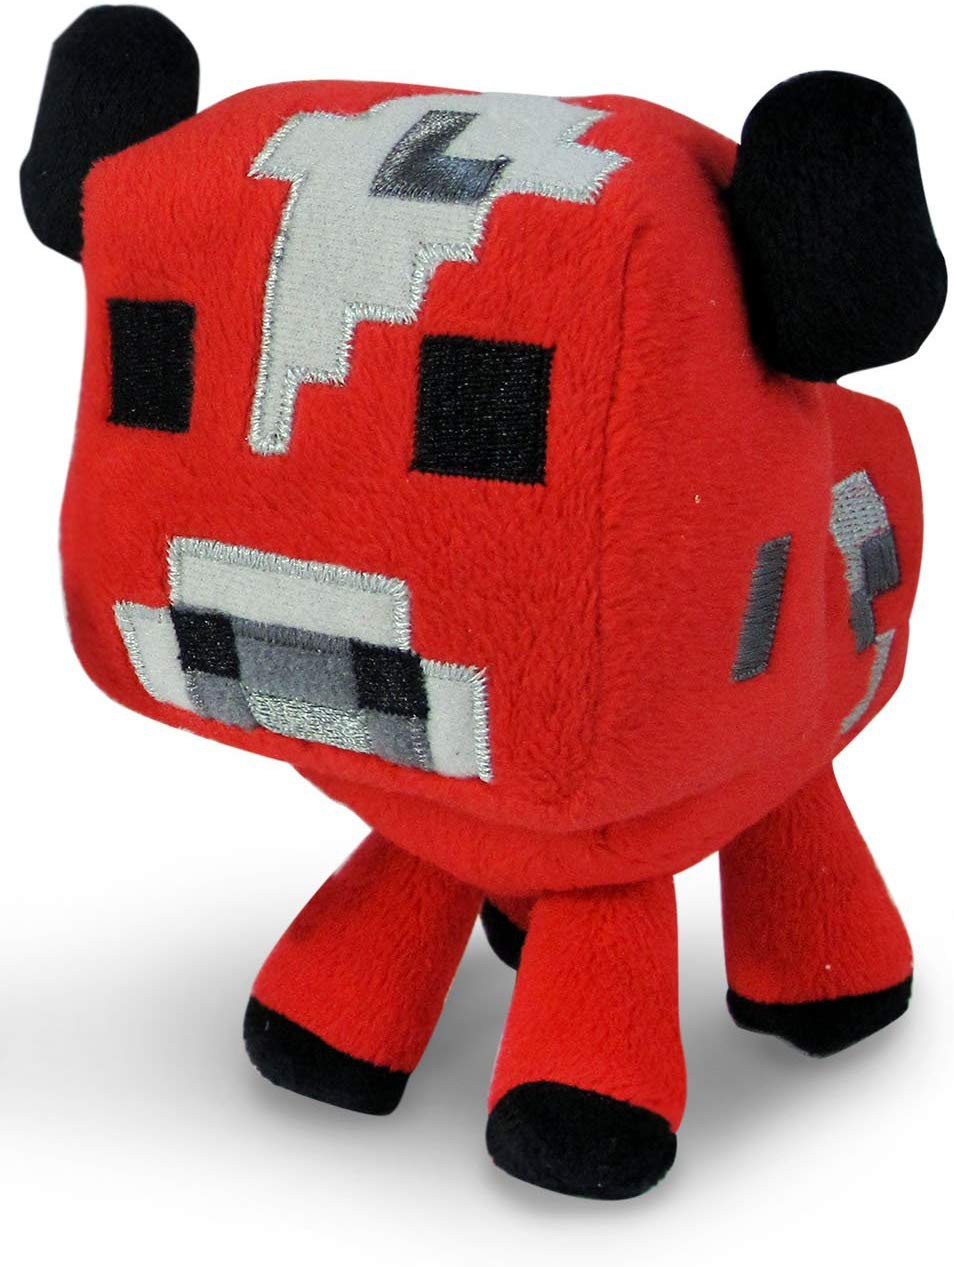 Plush toy Minecraft Baby Mooshroom| 12-17cm